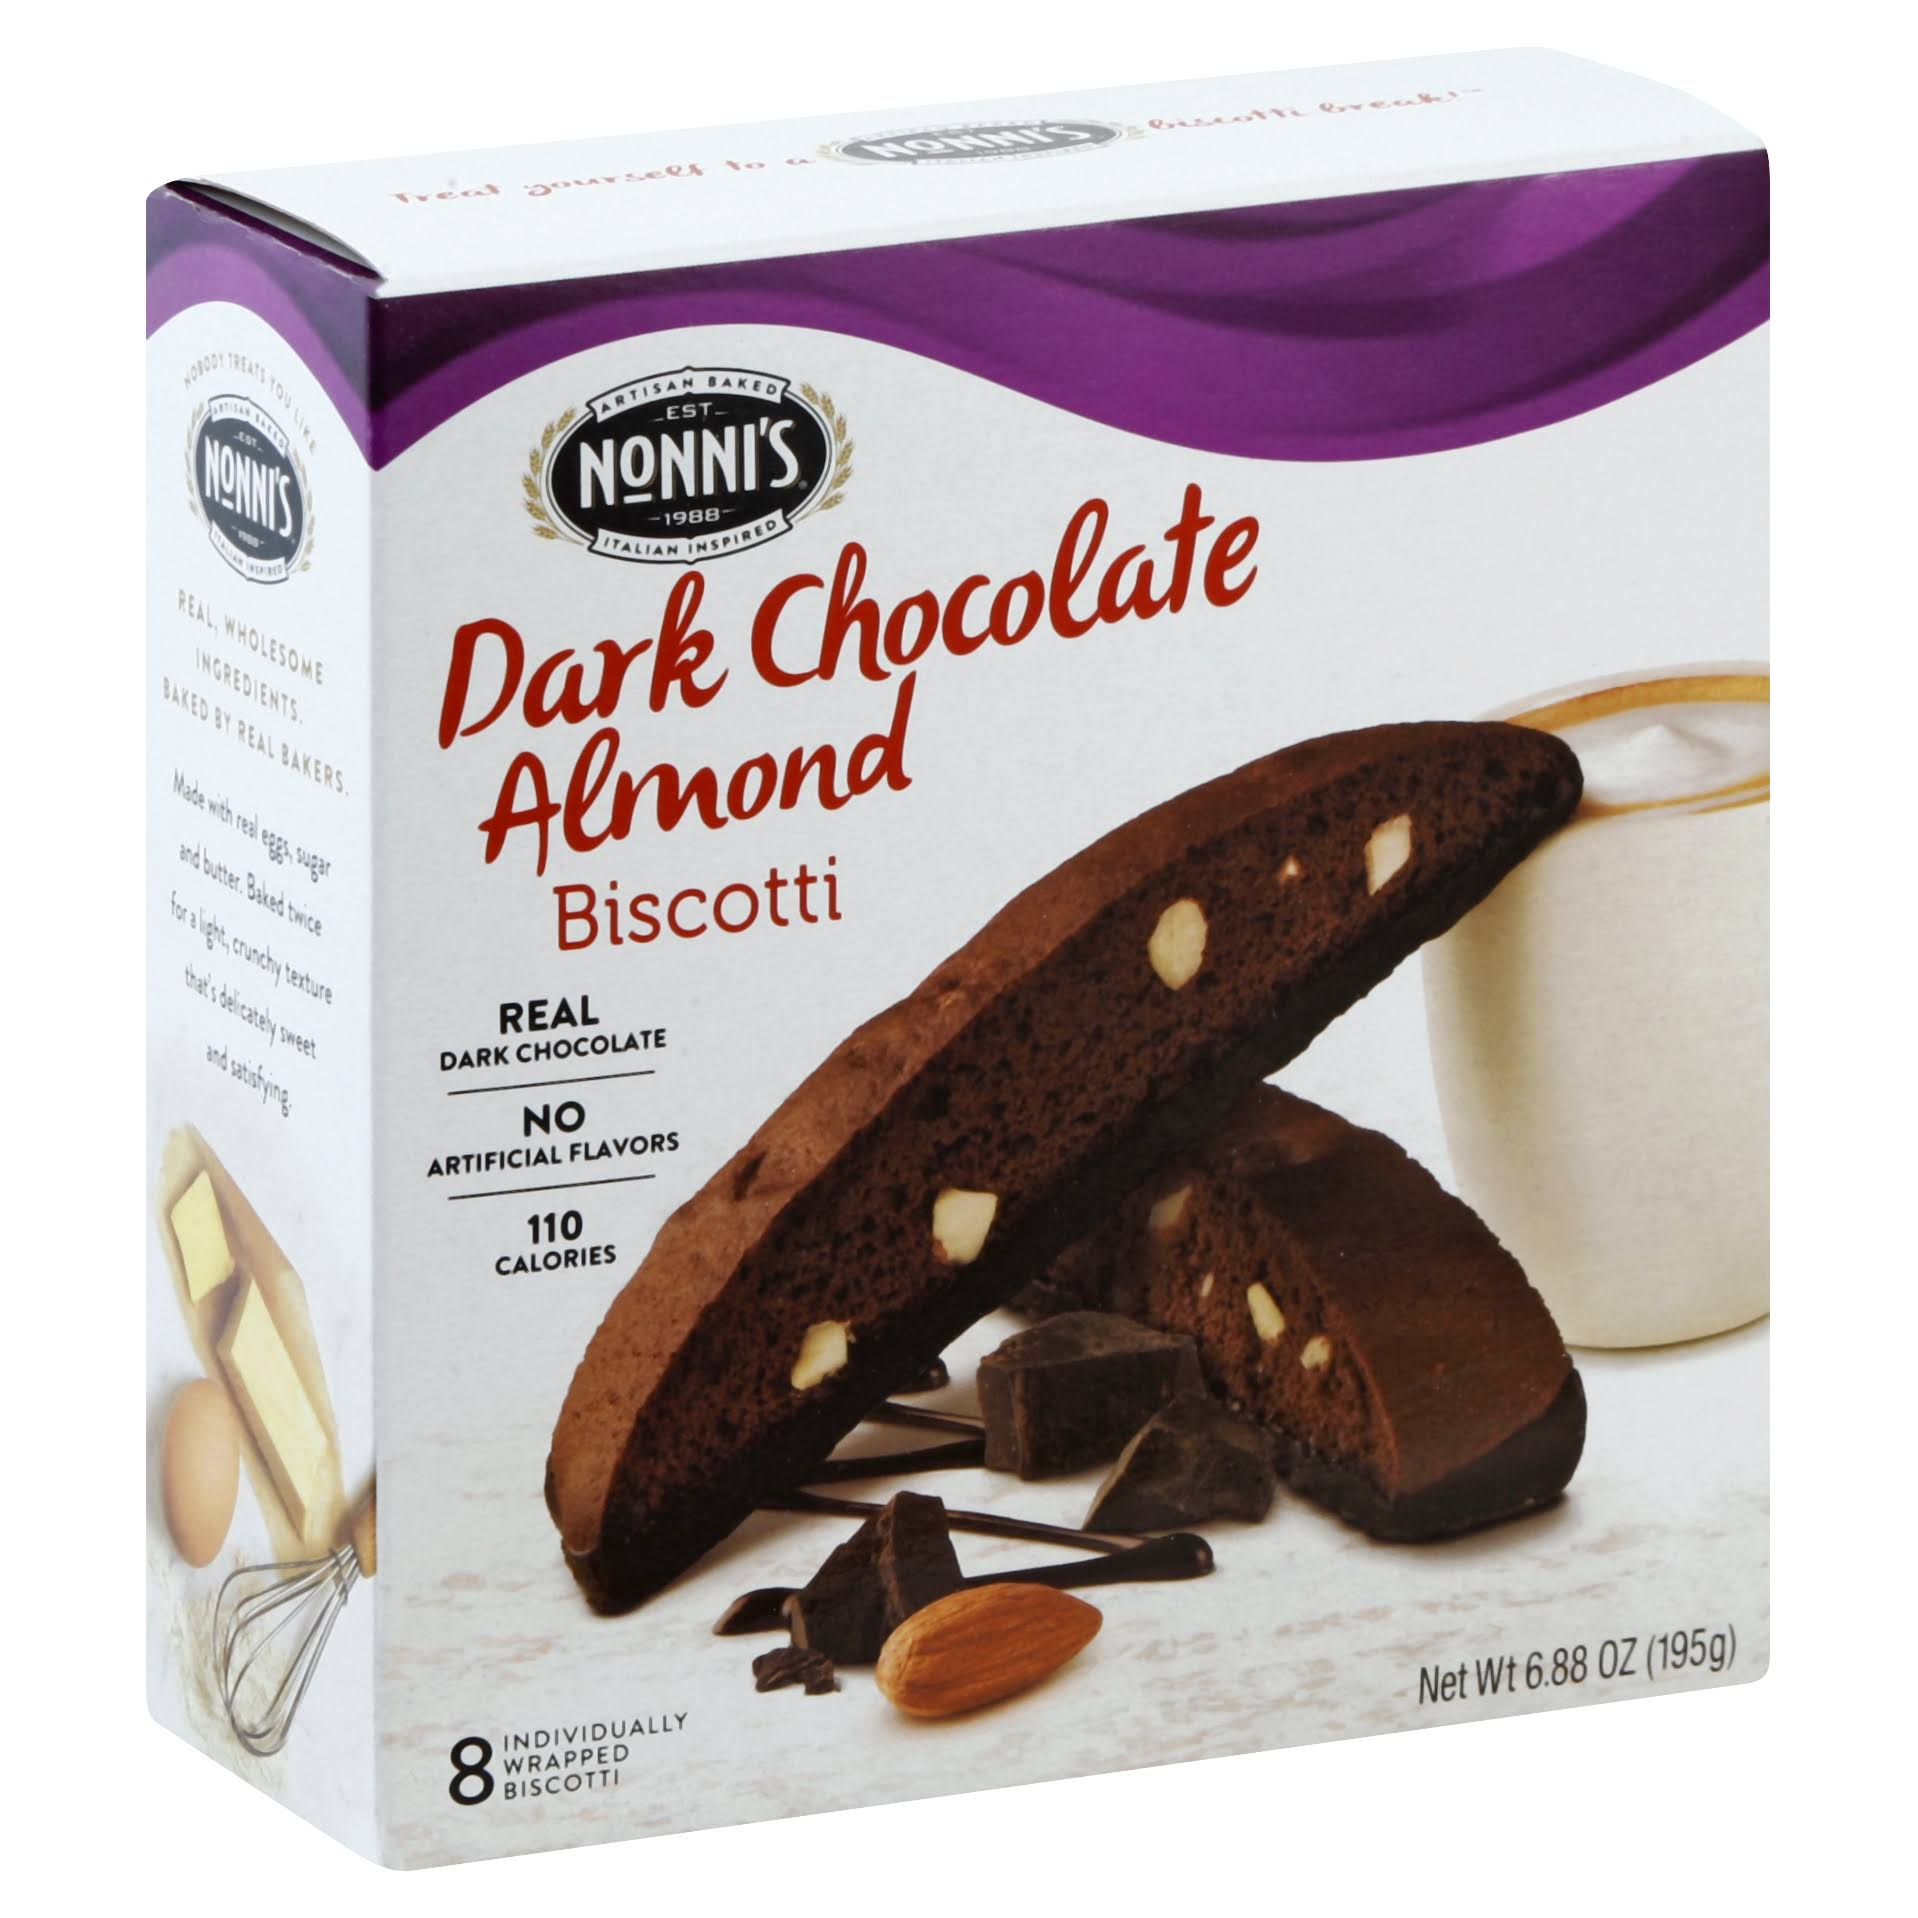 Nonni's Biscotti - Dark Chocolate Almond Flavor, 8ct, 6.88oz